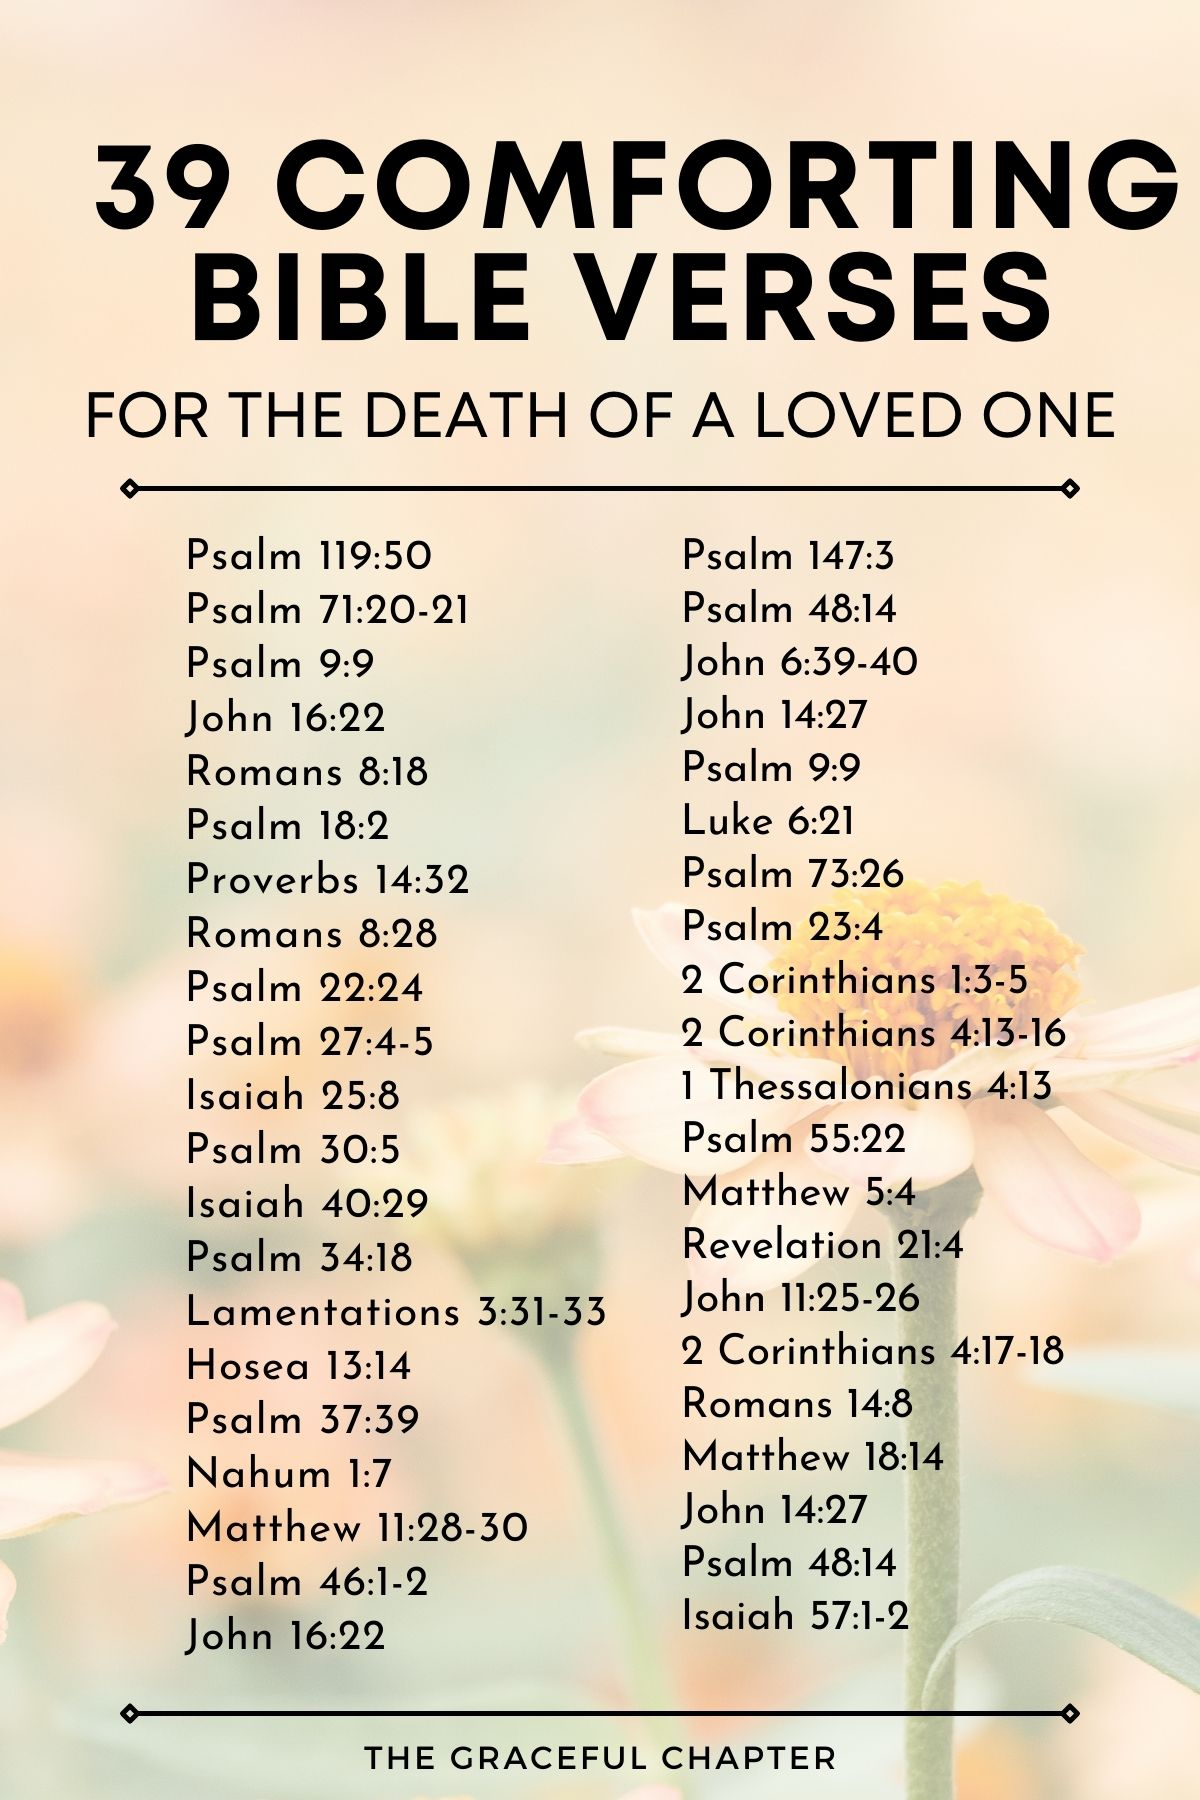 comforting bible verses for the death of a loved one